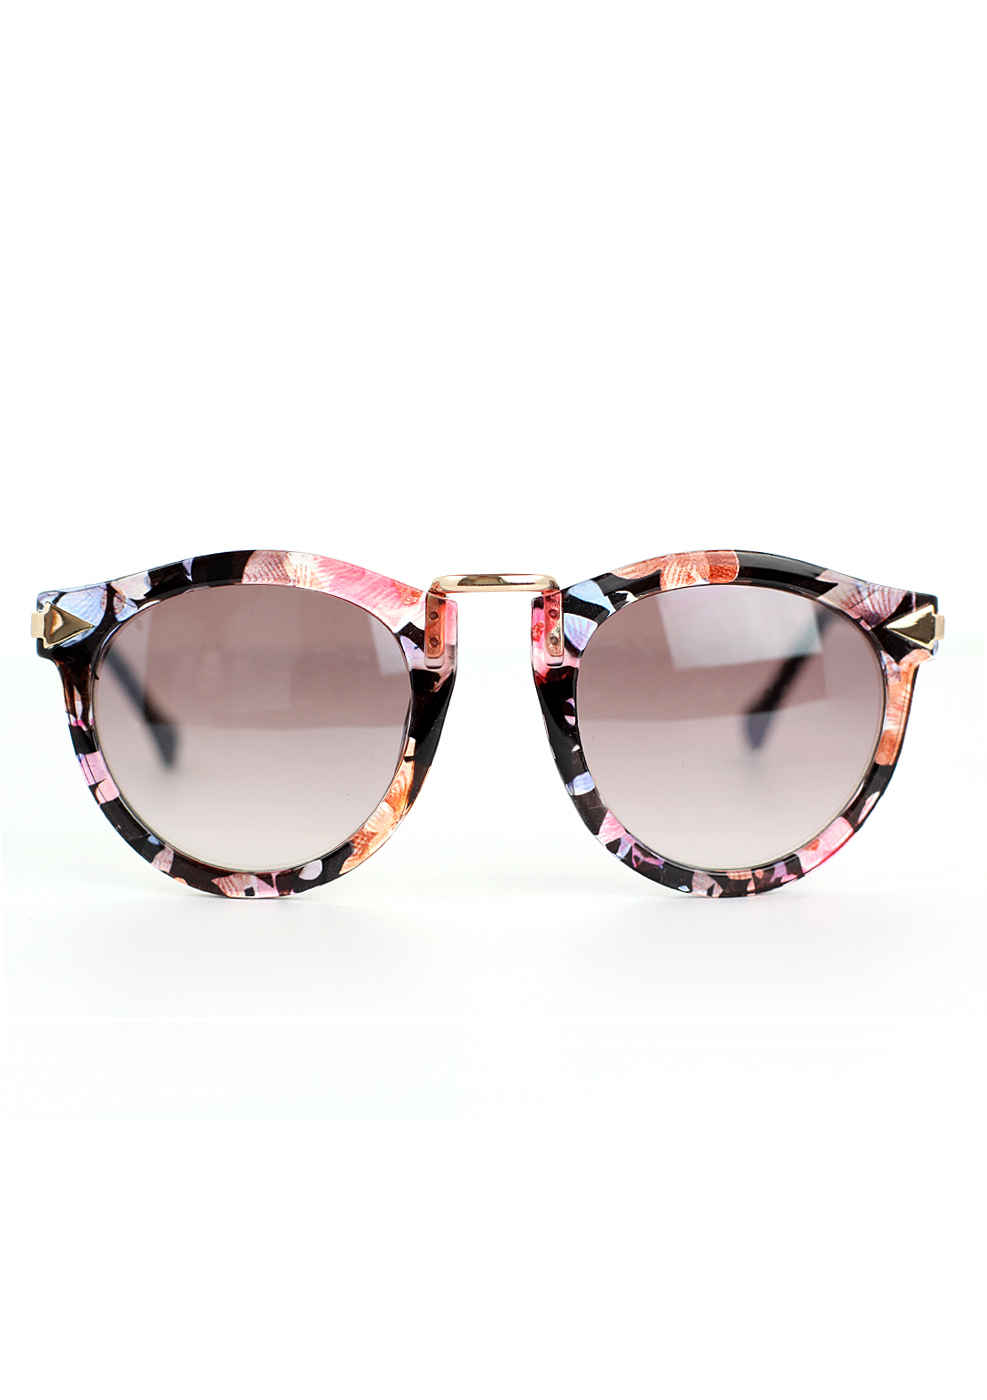 Chicwish Multi-Color Sunglasses with Metal Detail